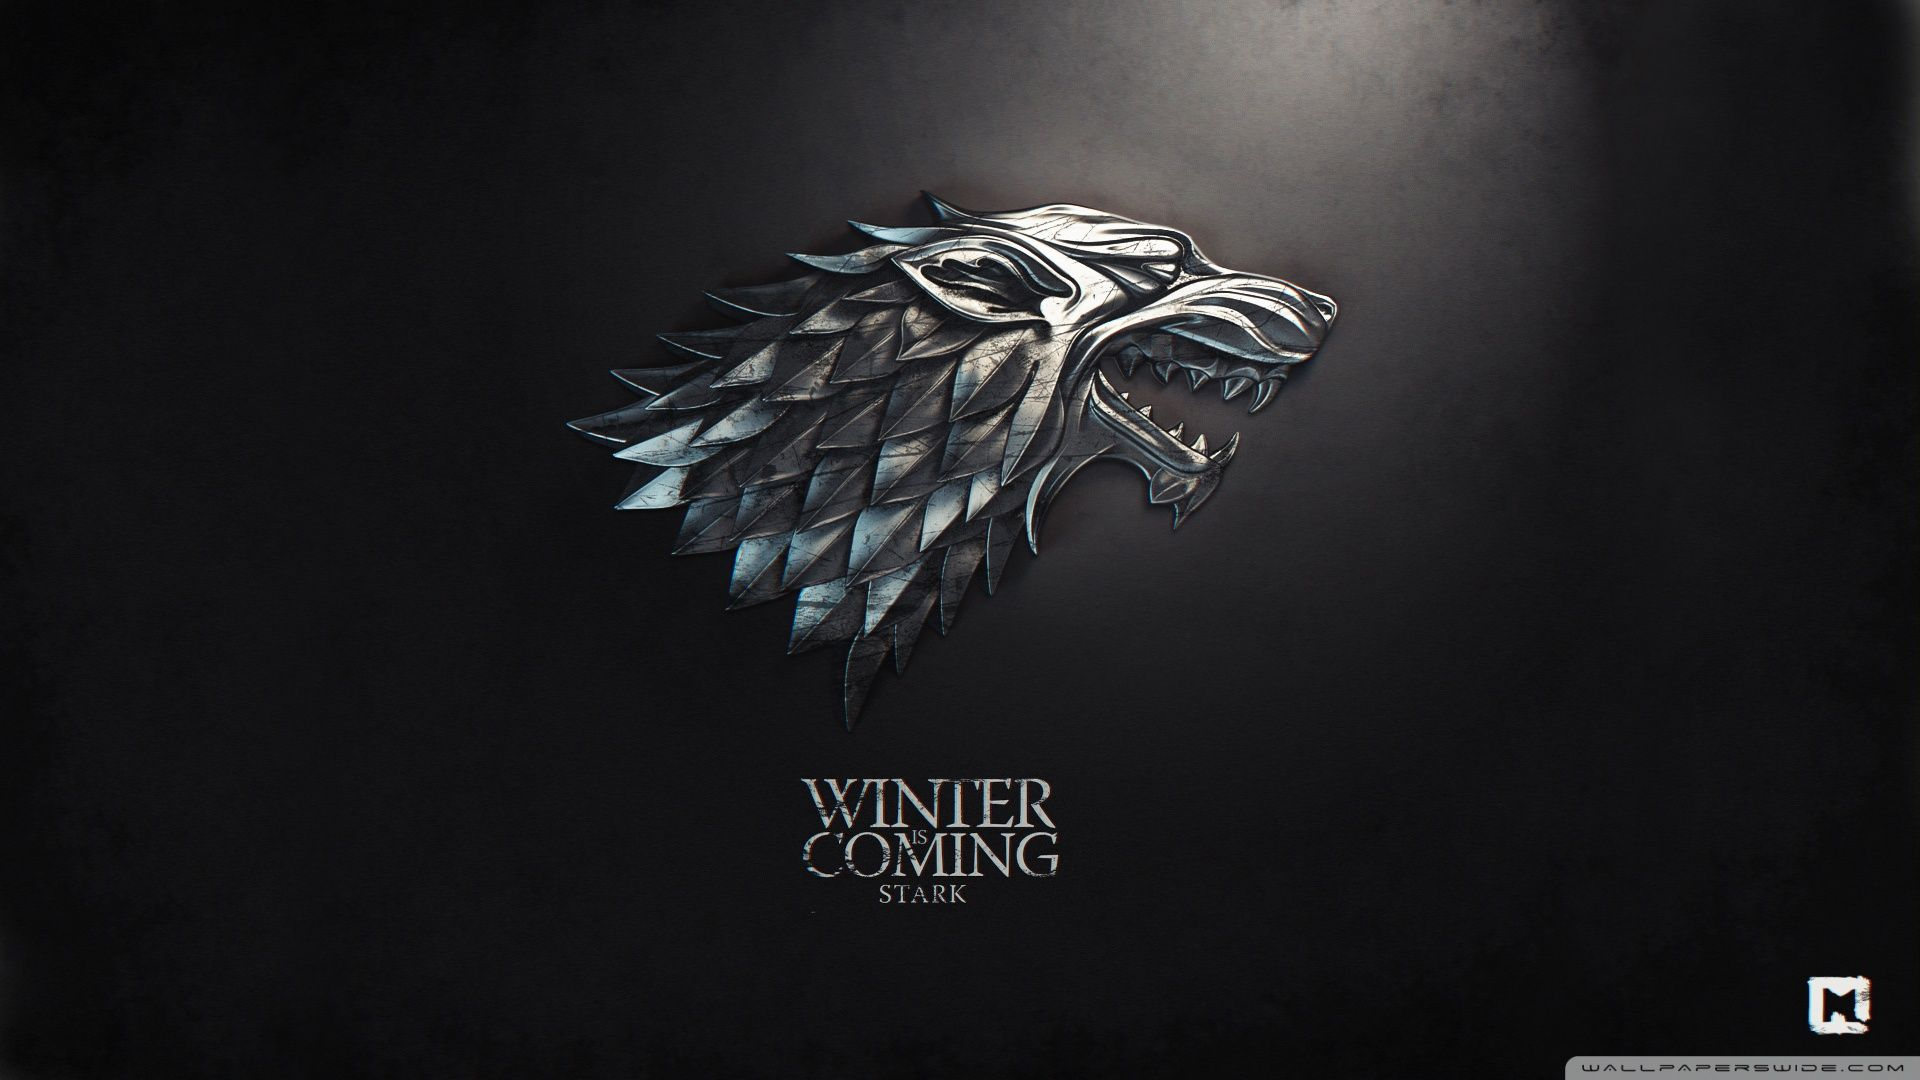 WallpapersWide.com | game of thrones High Resolution Desktop